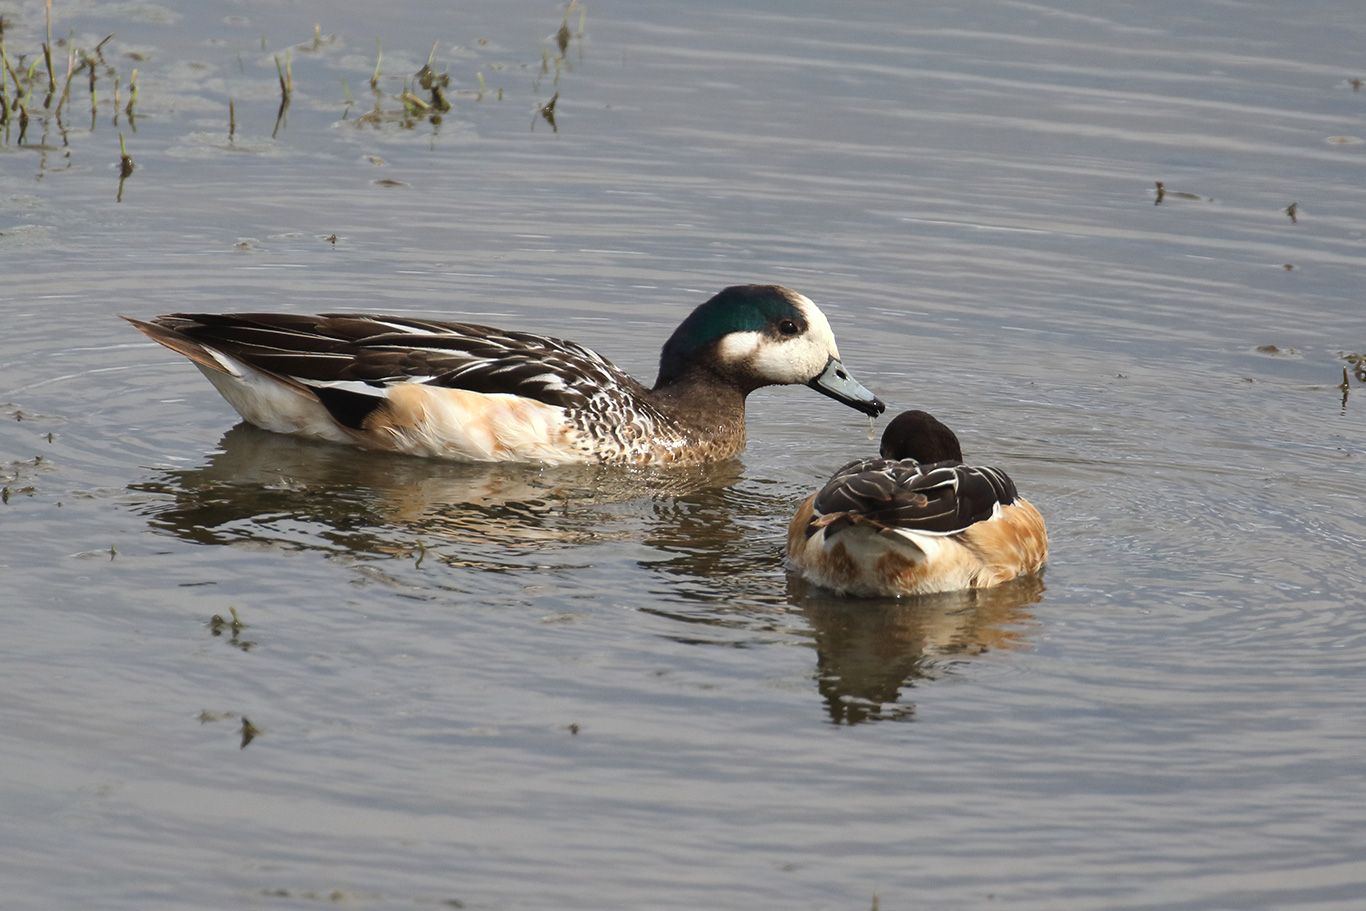 Chiloe Wigeon, Humedal Tres Puentes, Punta Arenas, Chile.